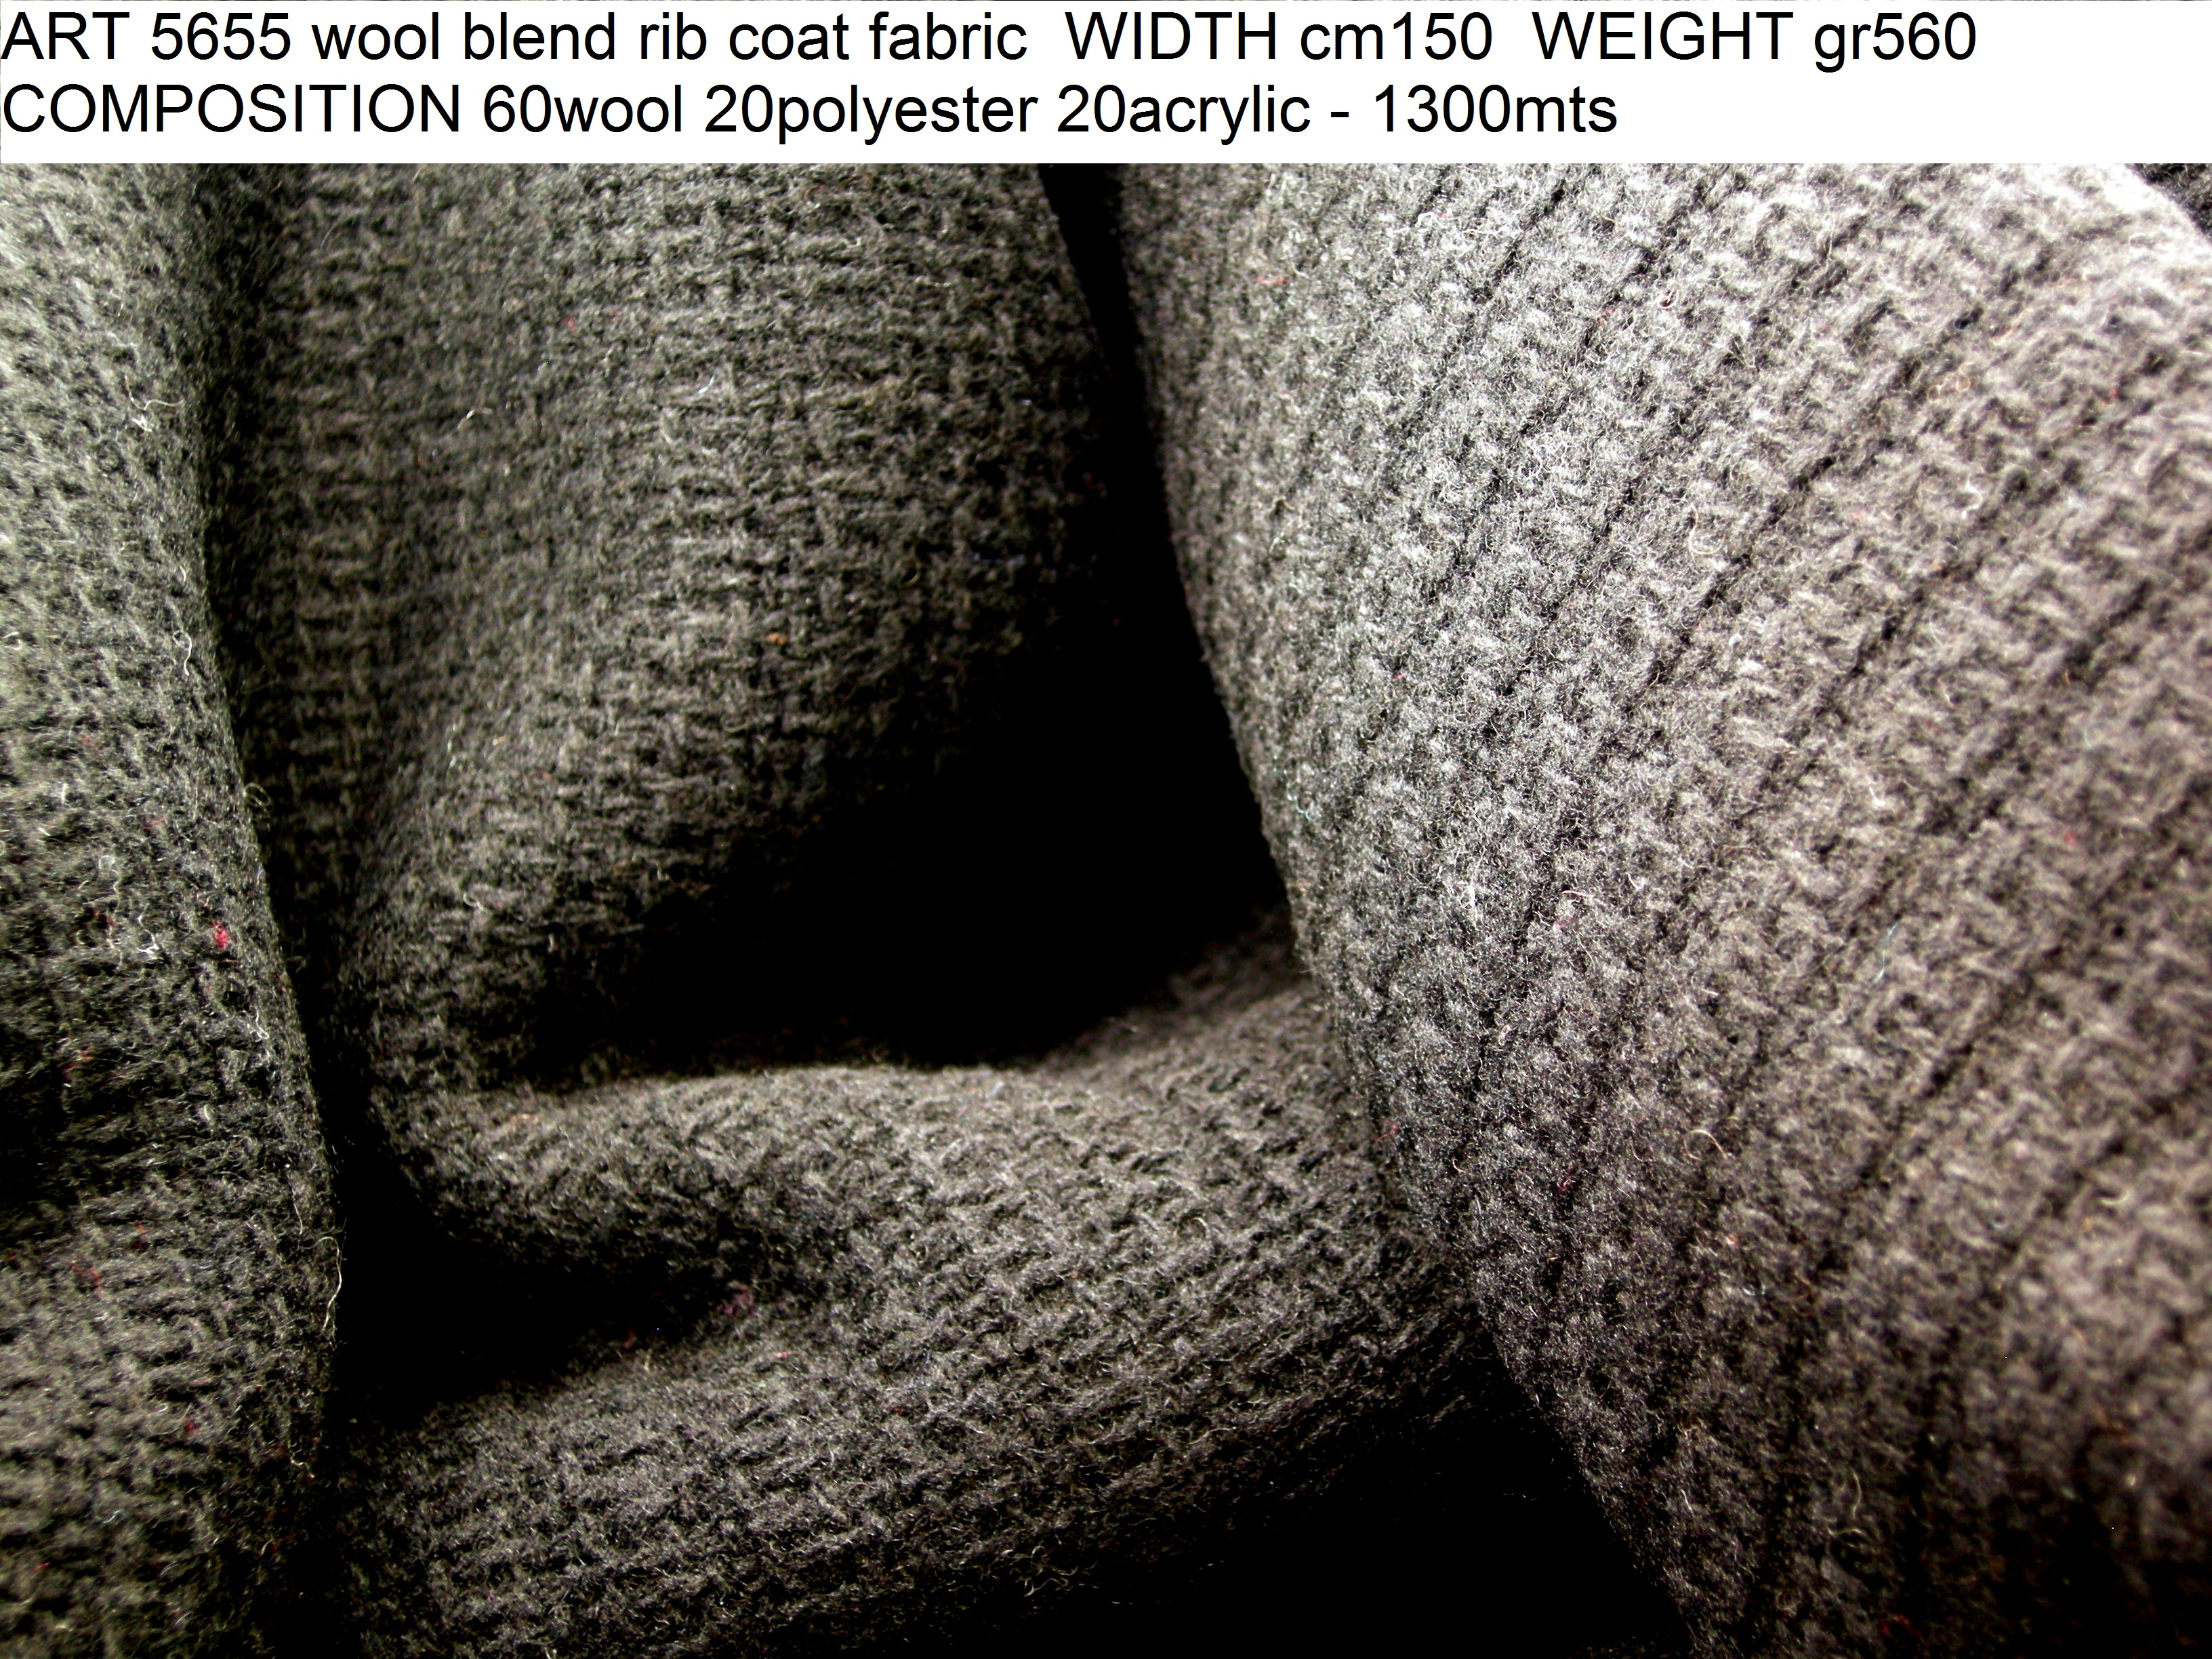 ART 5655 wool blend rib coat fabric WIDTH cm150 WEIGHT gr560 COMPOSITION 60wool 20polyester 20acrylic - 1300mts